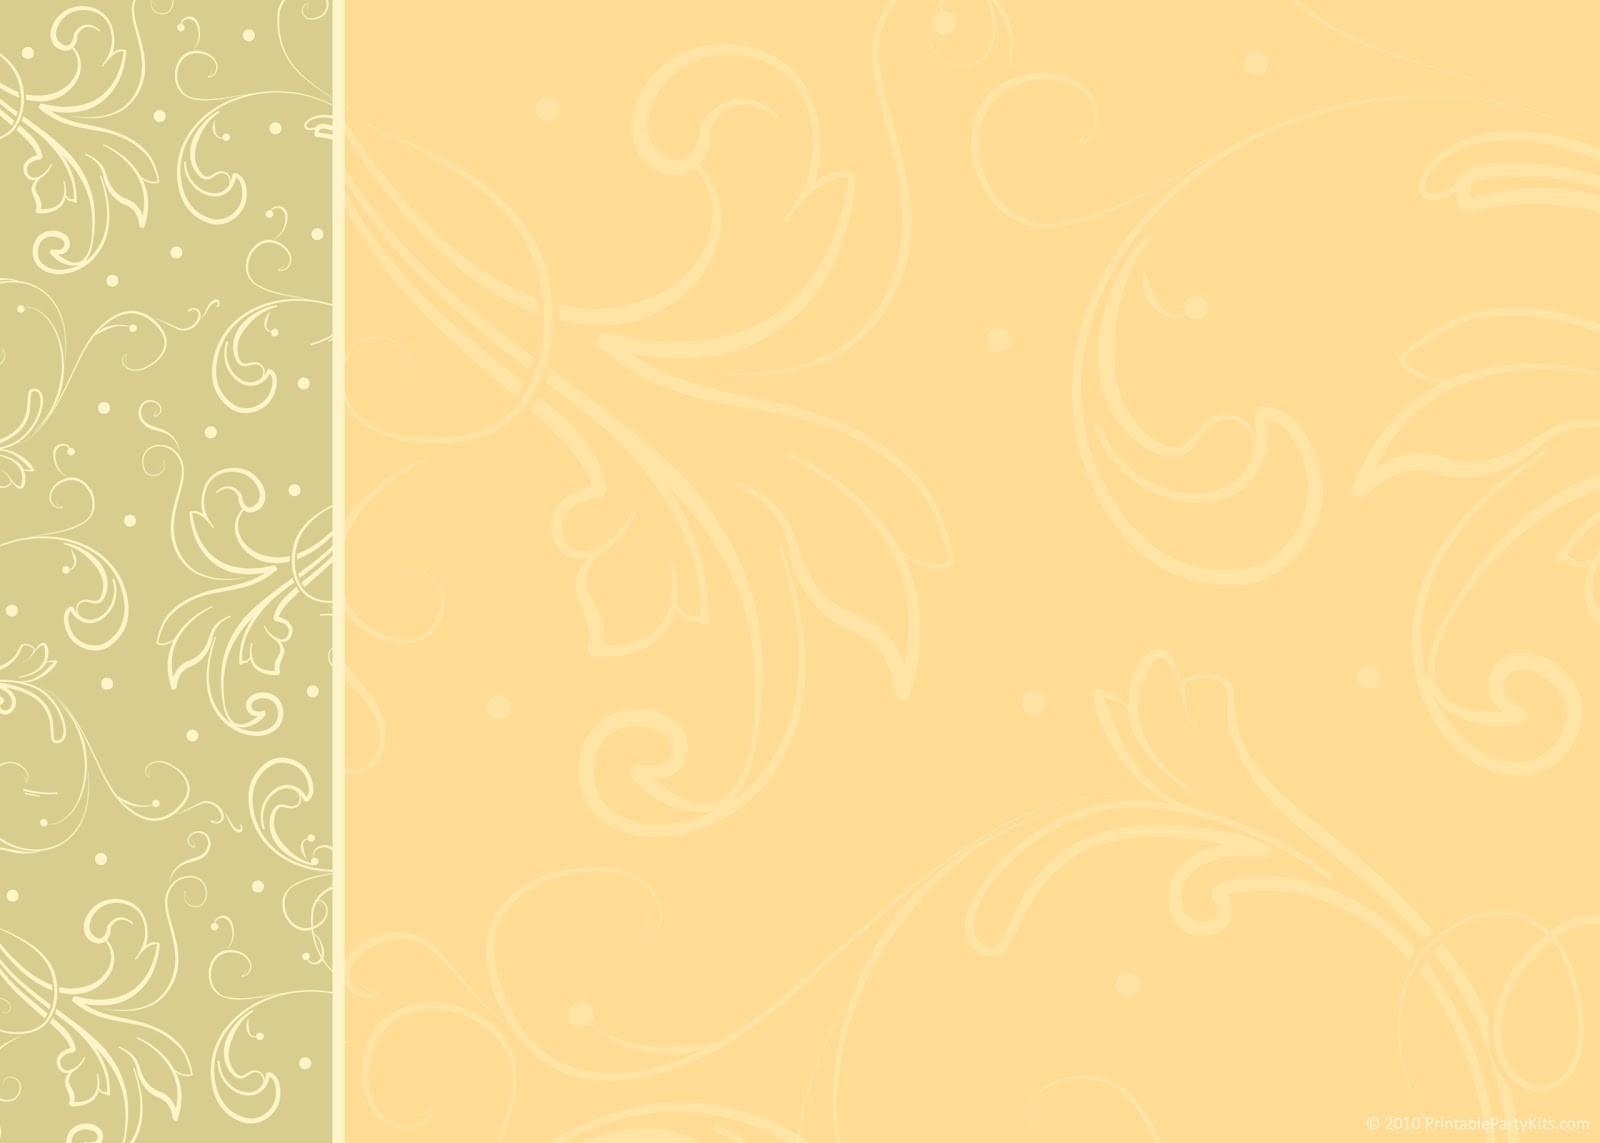 Wedding Card Backgrounds Posted By Ethan Sellers